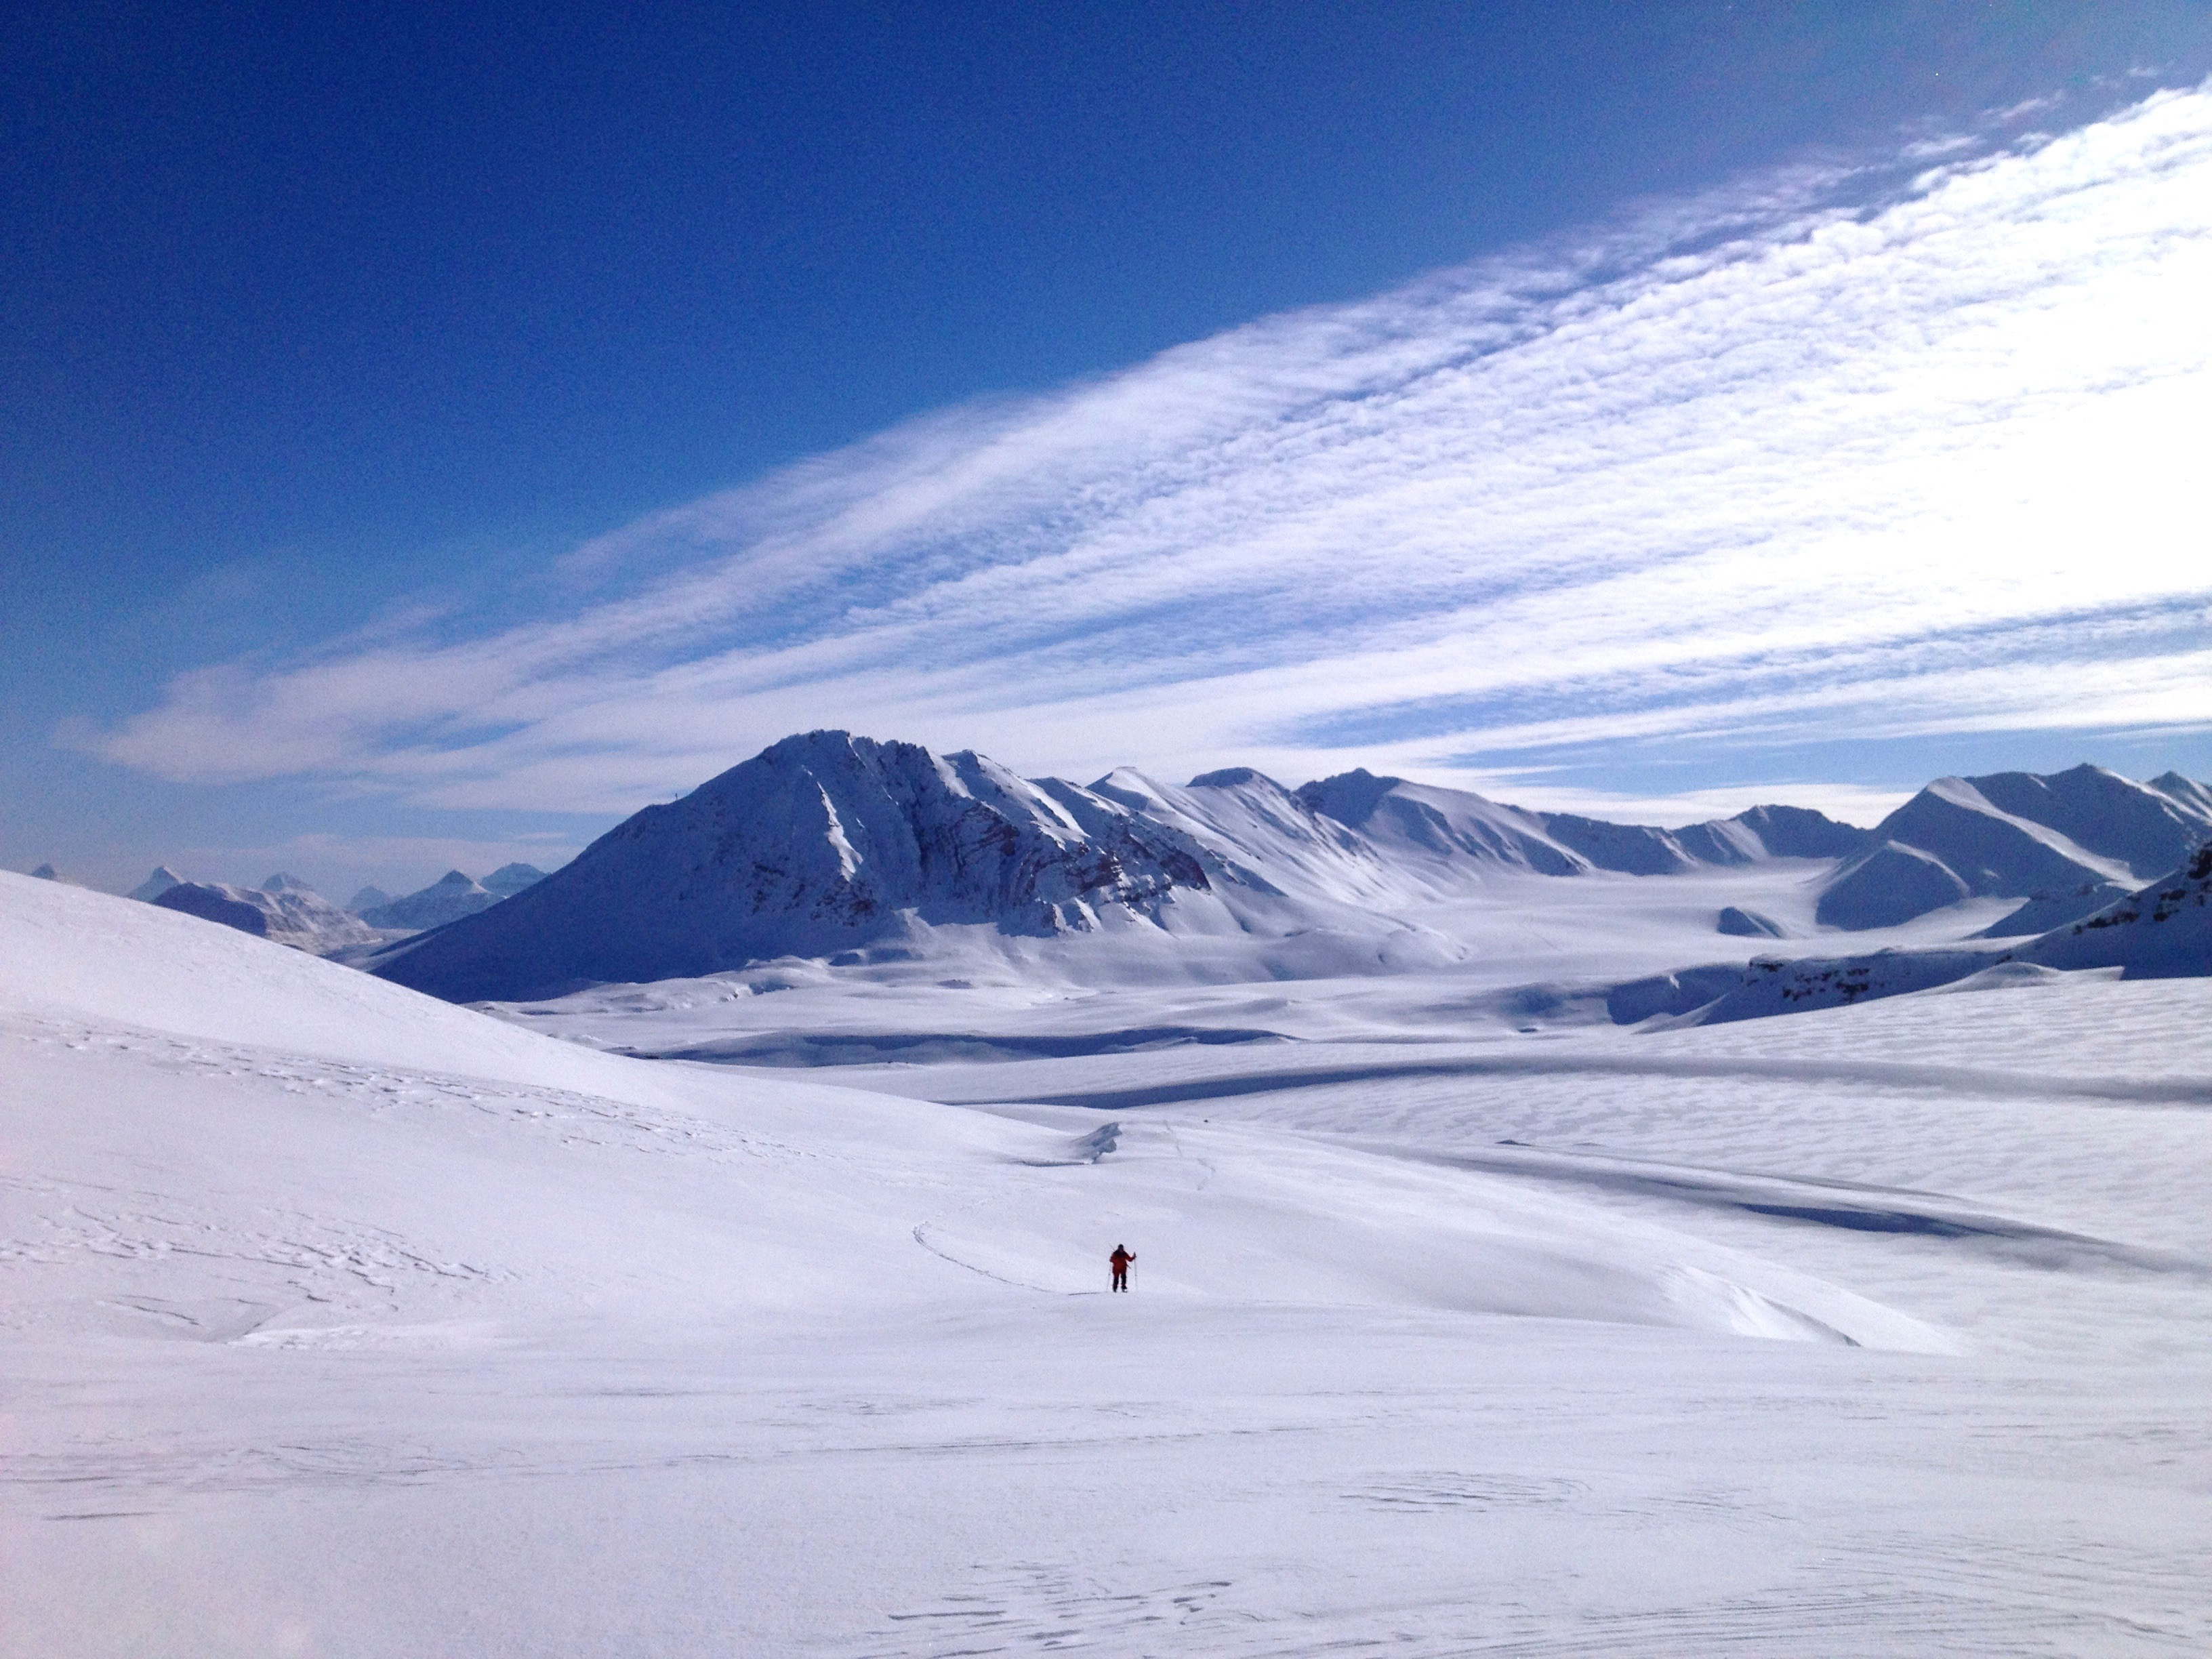 I went back to Ny-Ålesund later in the year and this time needed to cross-country ski around to collect water samples. The scenery was gorgeous!